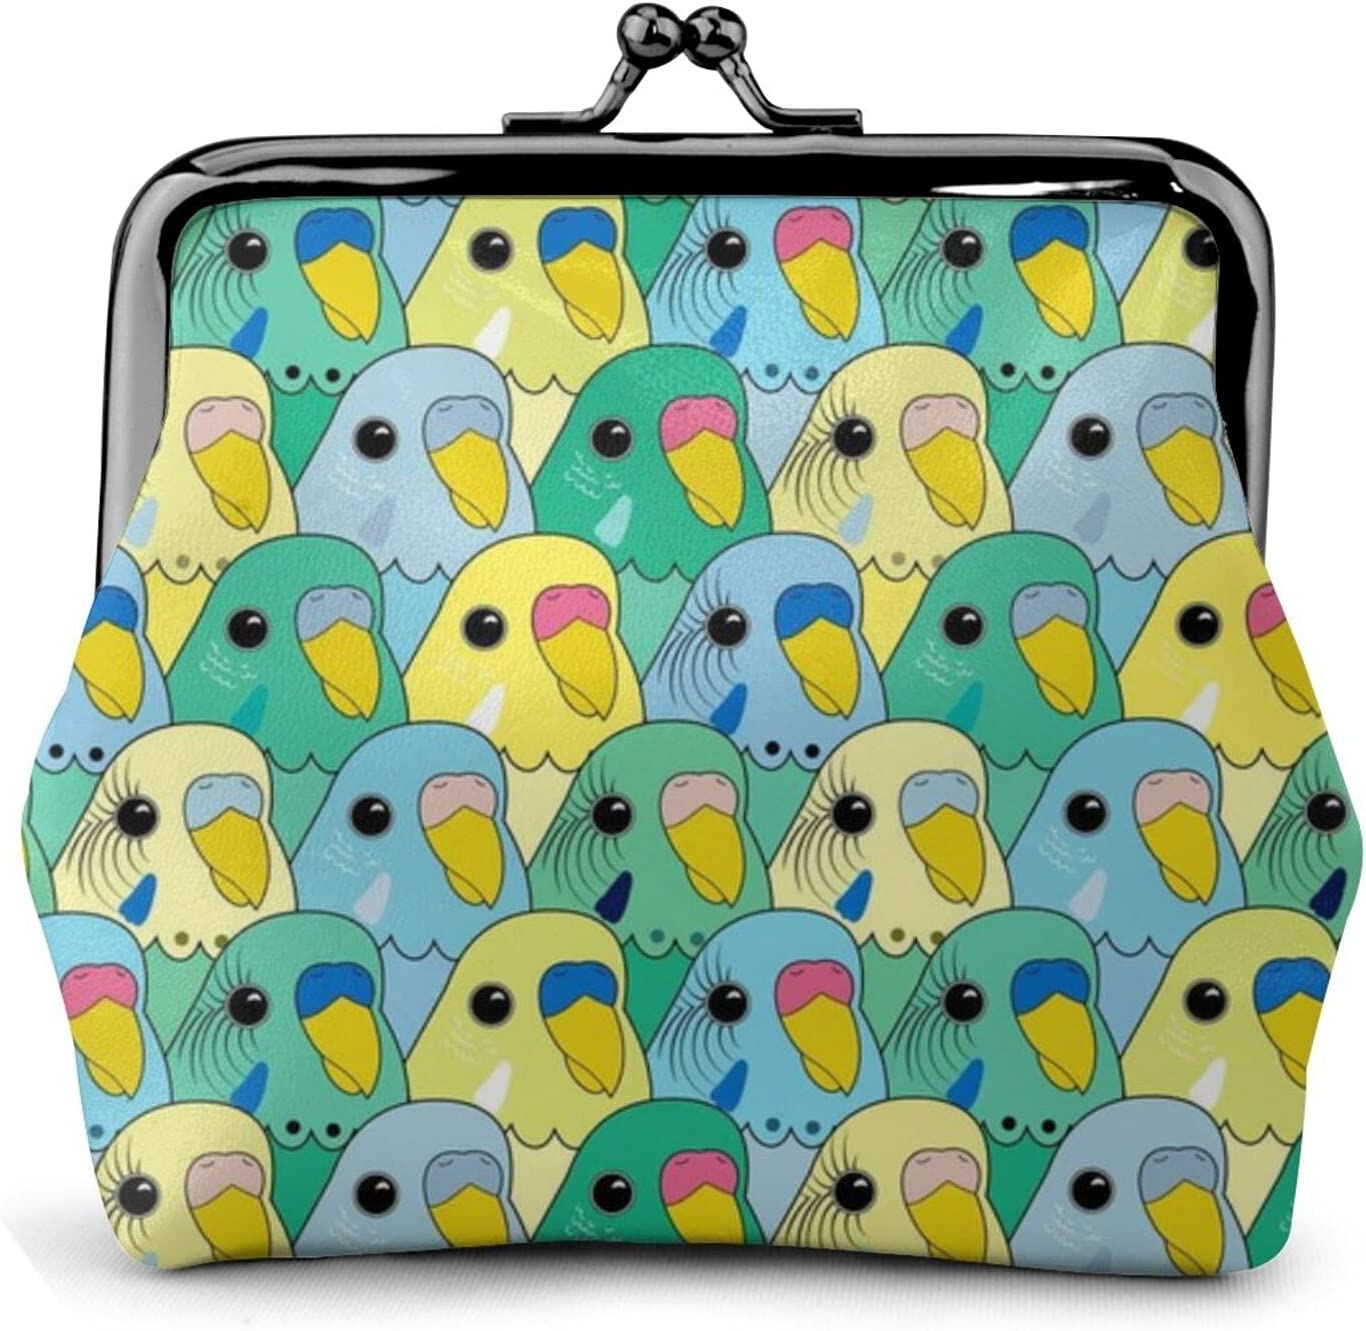 Birbs On Birbs 524 Leather Coin Purse Kiss Lock Change Pouch Vintage Clasp Closure Buckle Wallet Small Women Gift